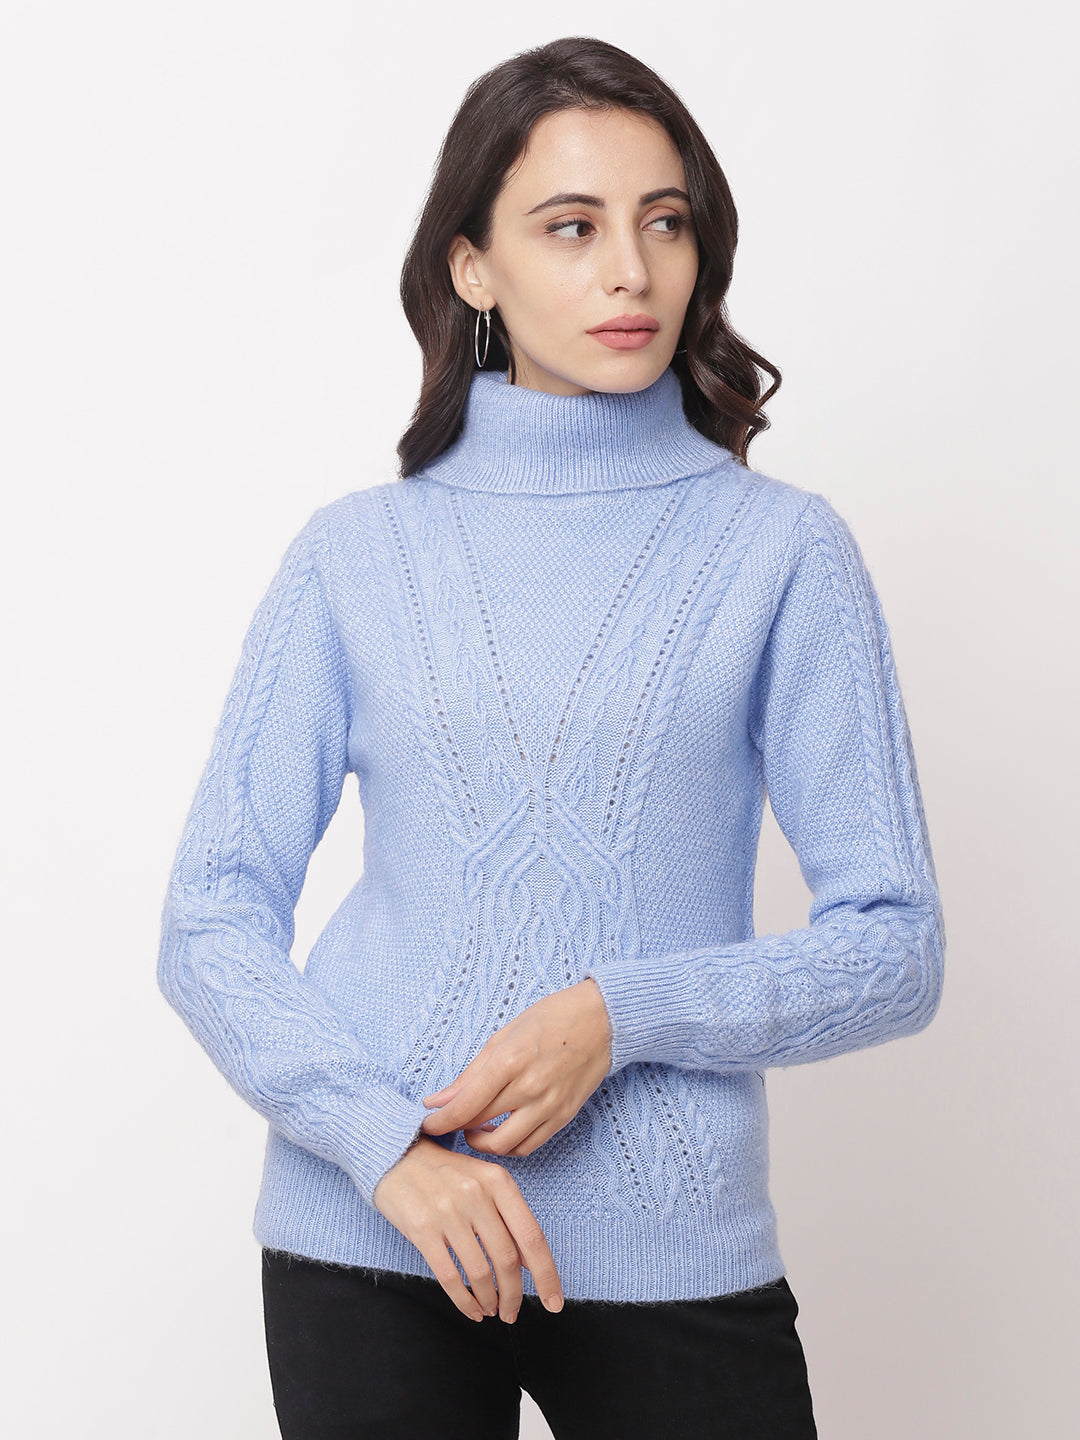 Globus Blue  High Neck Self Design Sweatshirt-1